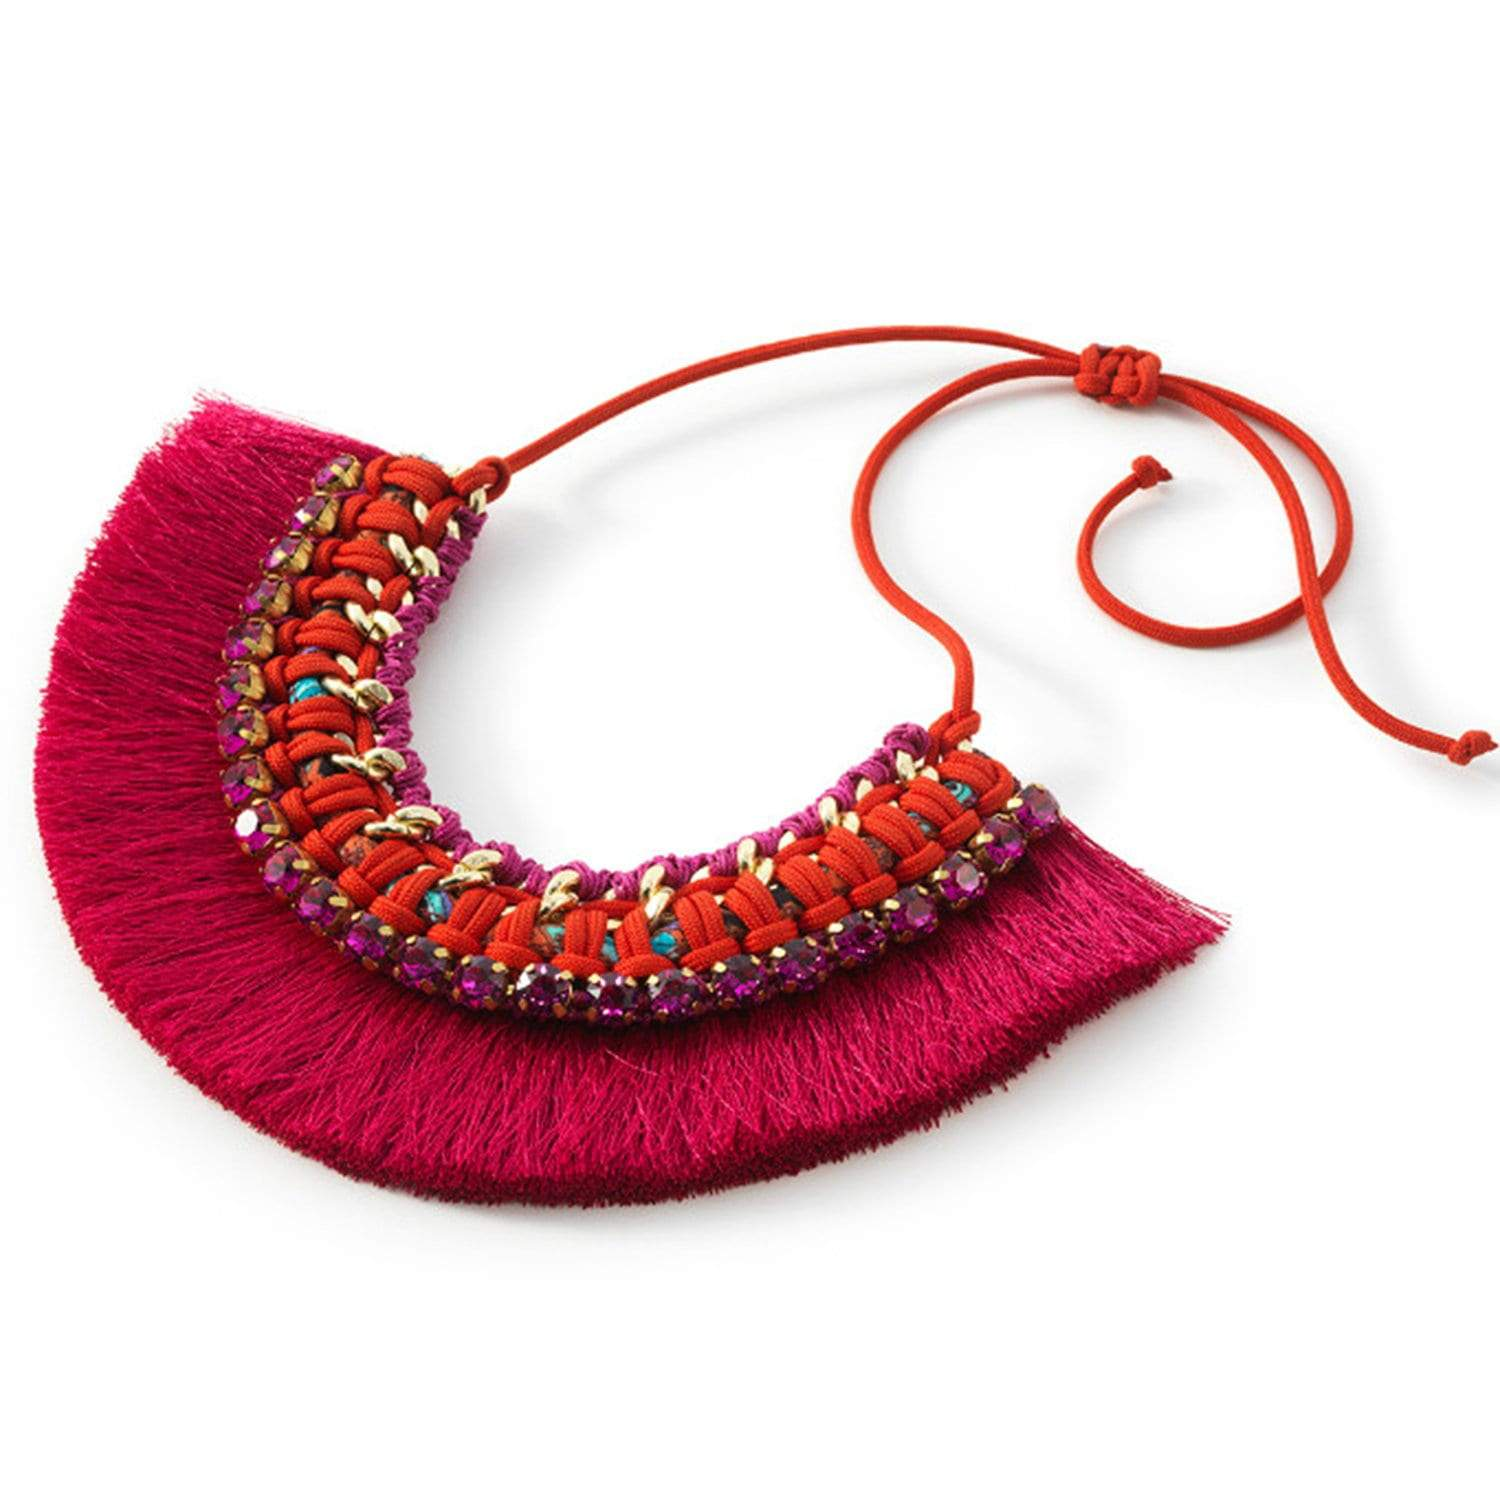 Oltrarno Bib Necklace - BuDhaGirl